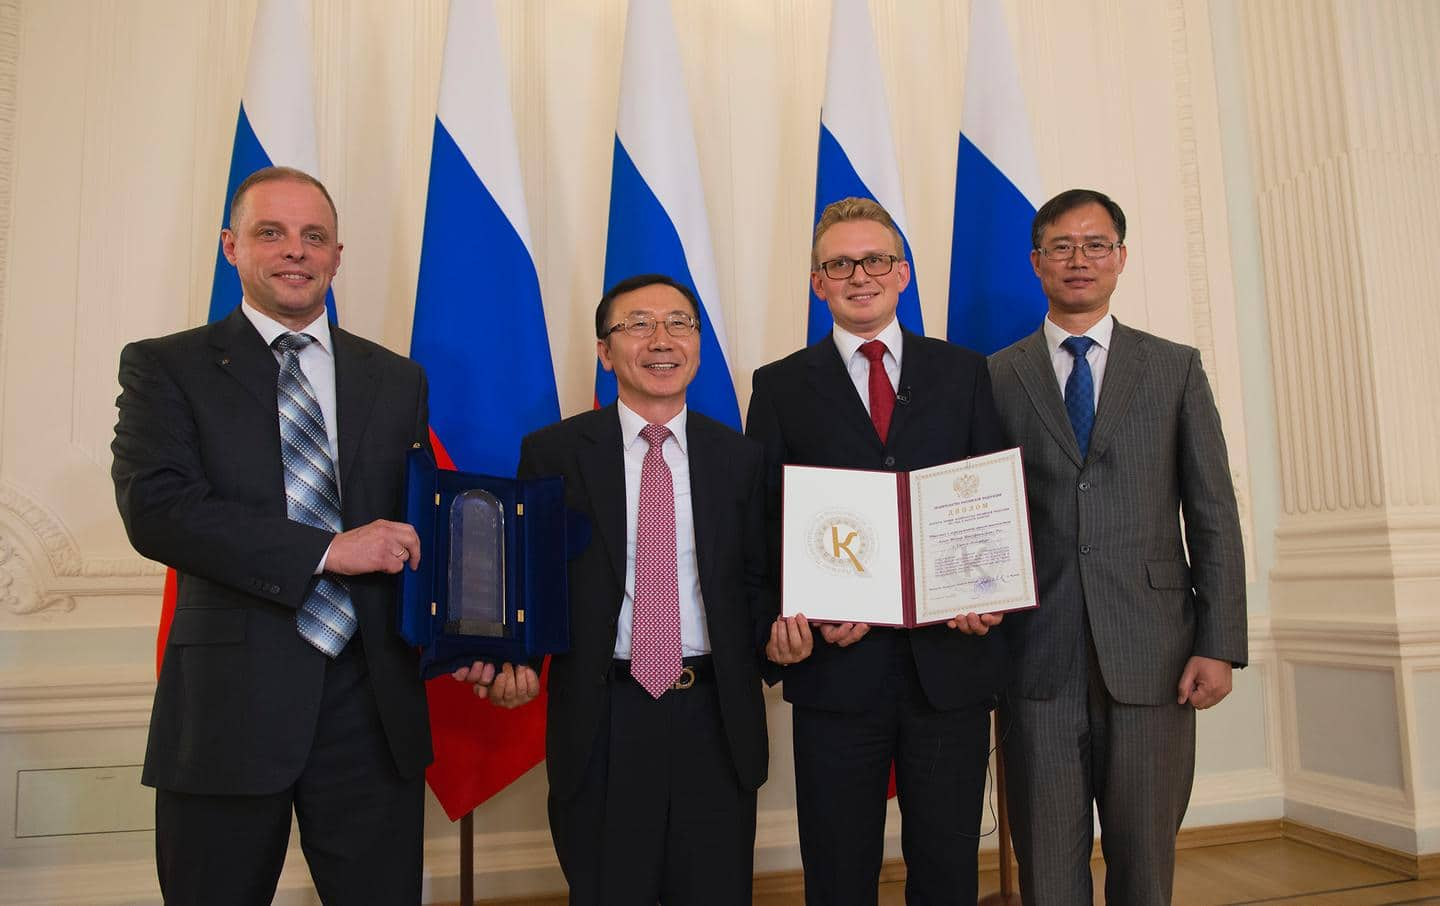 Plant of Hyundai Motor Company received Russian Government Quality Award